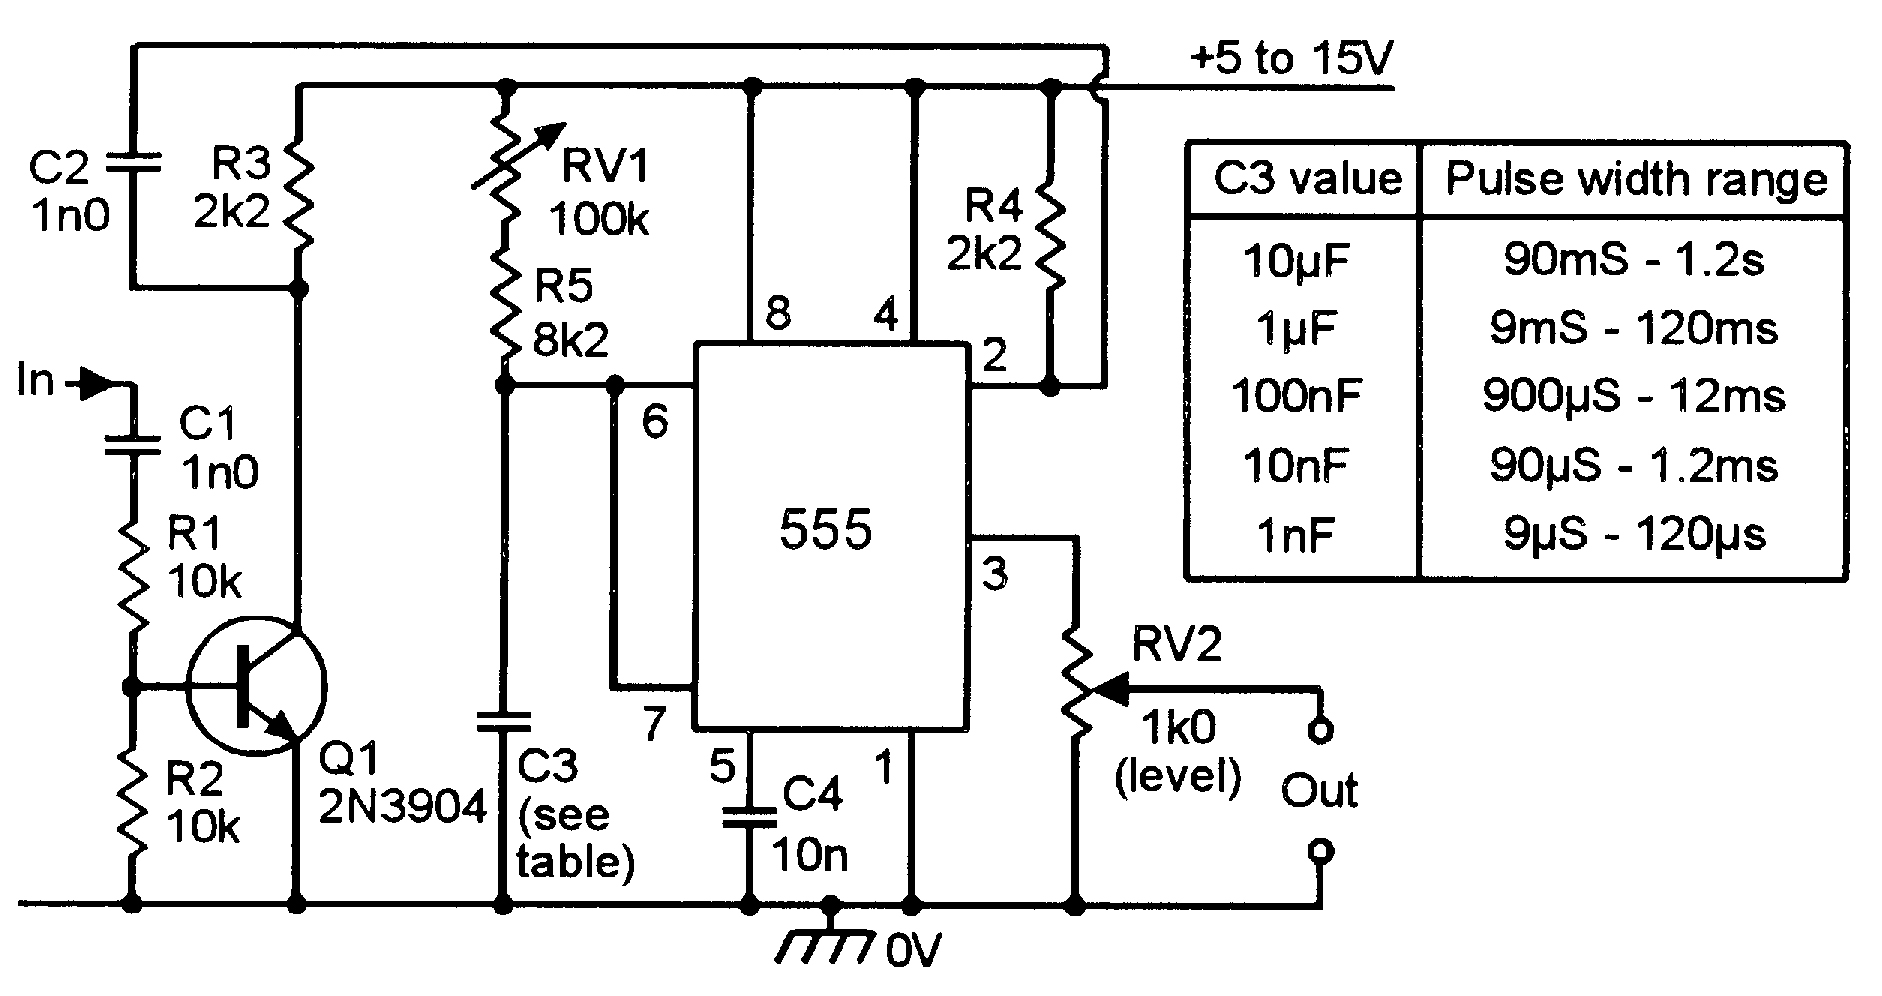 hight resolution of cheap hendershot fuelless generator schematic hendershot hendershot generator kit hendershot circuit with hendershot fuel less generator